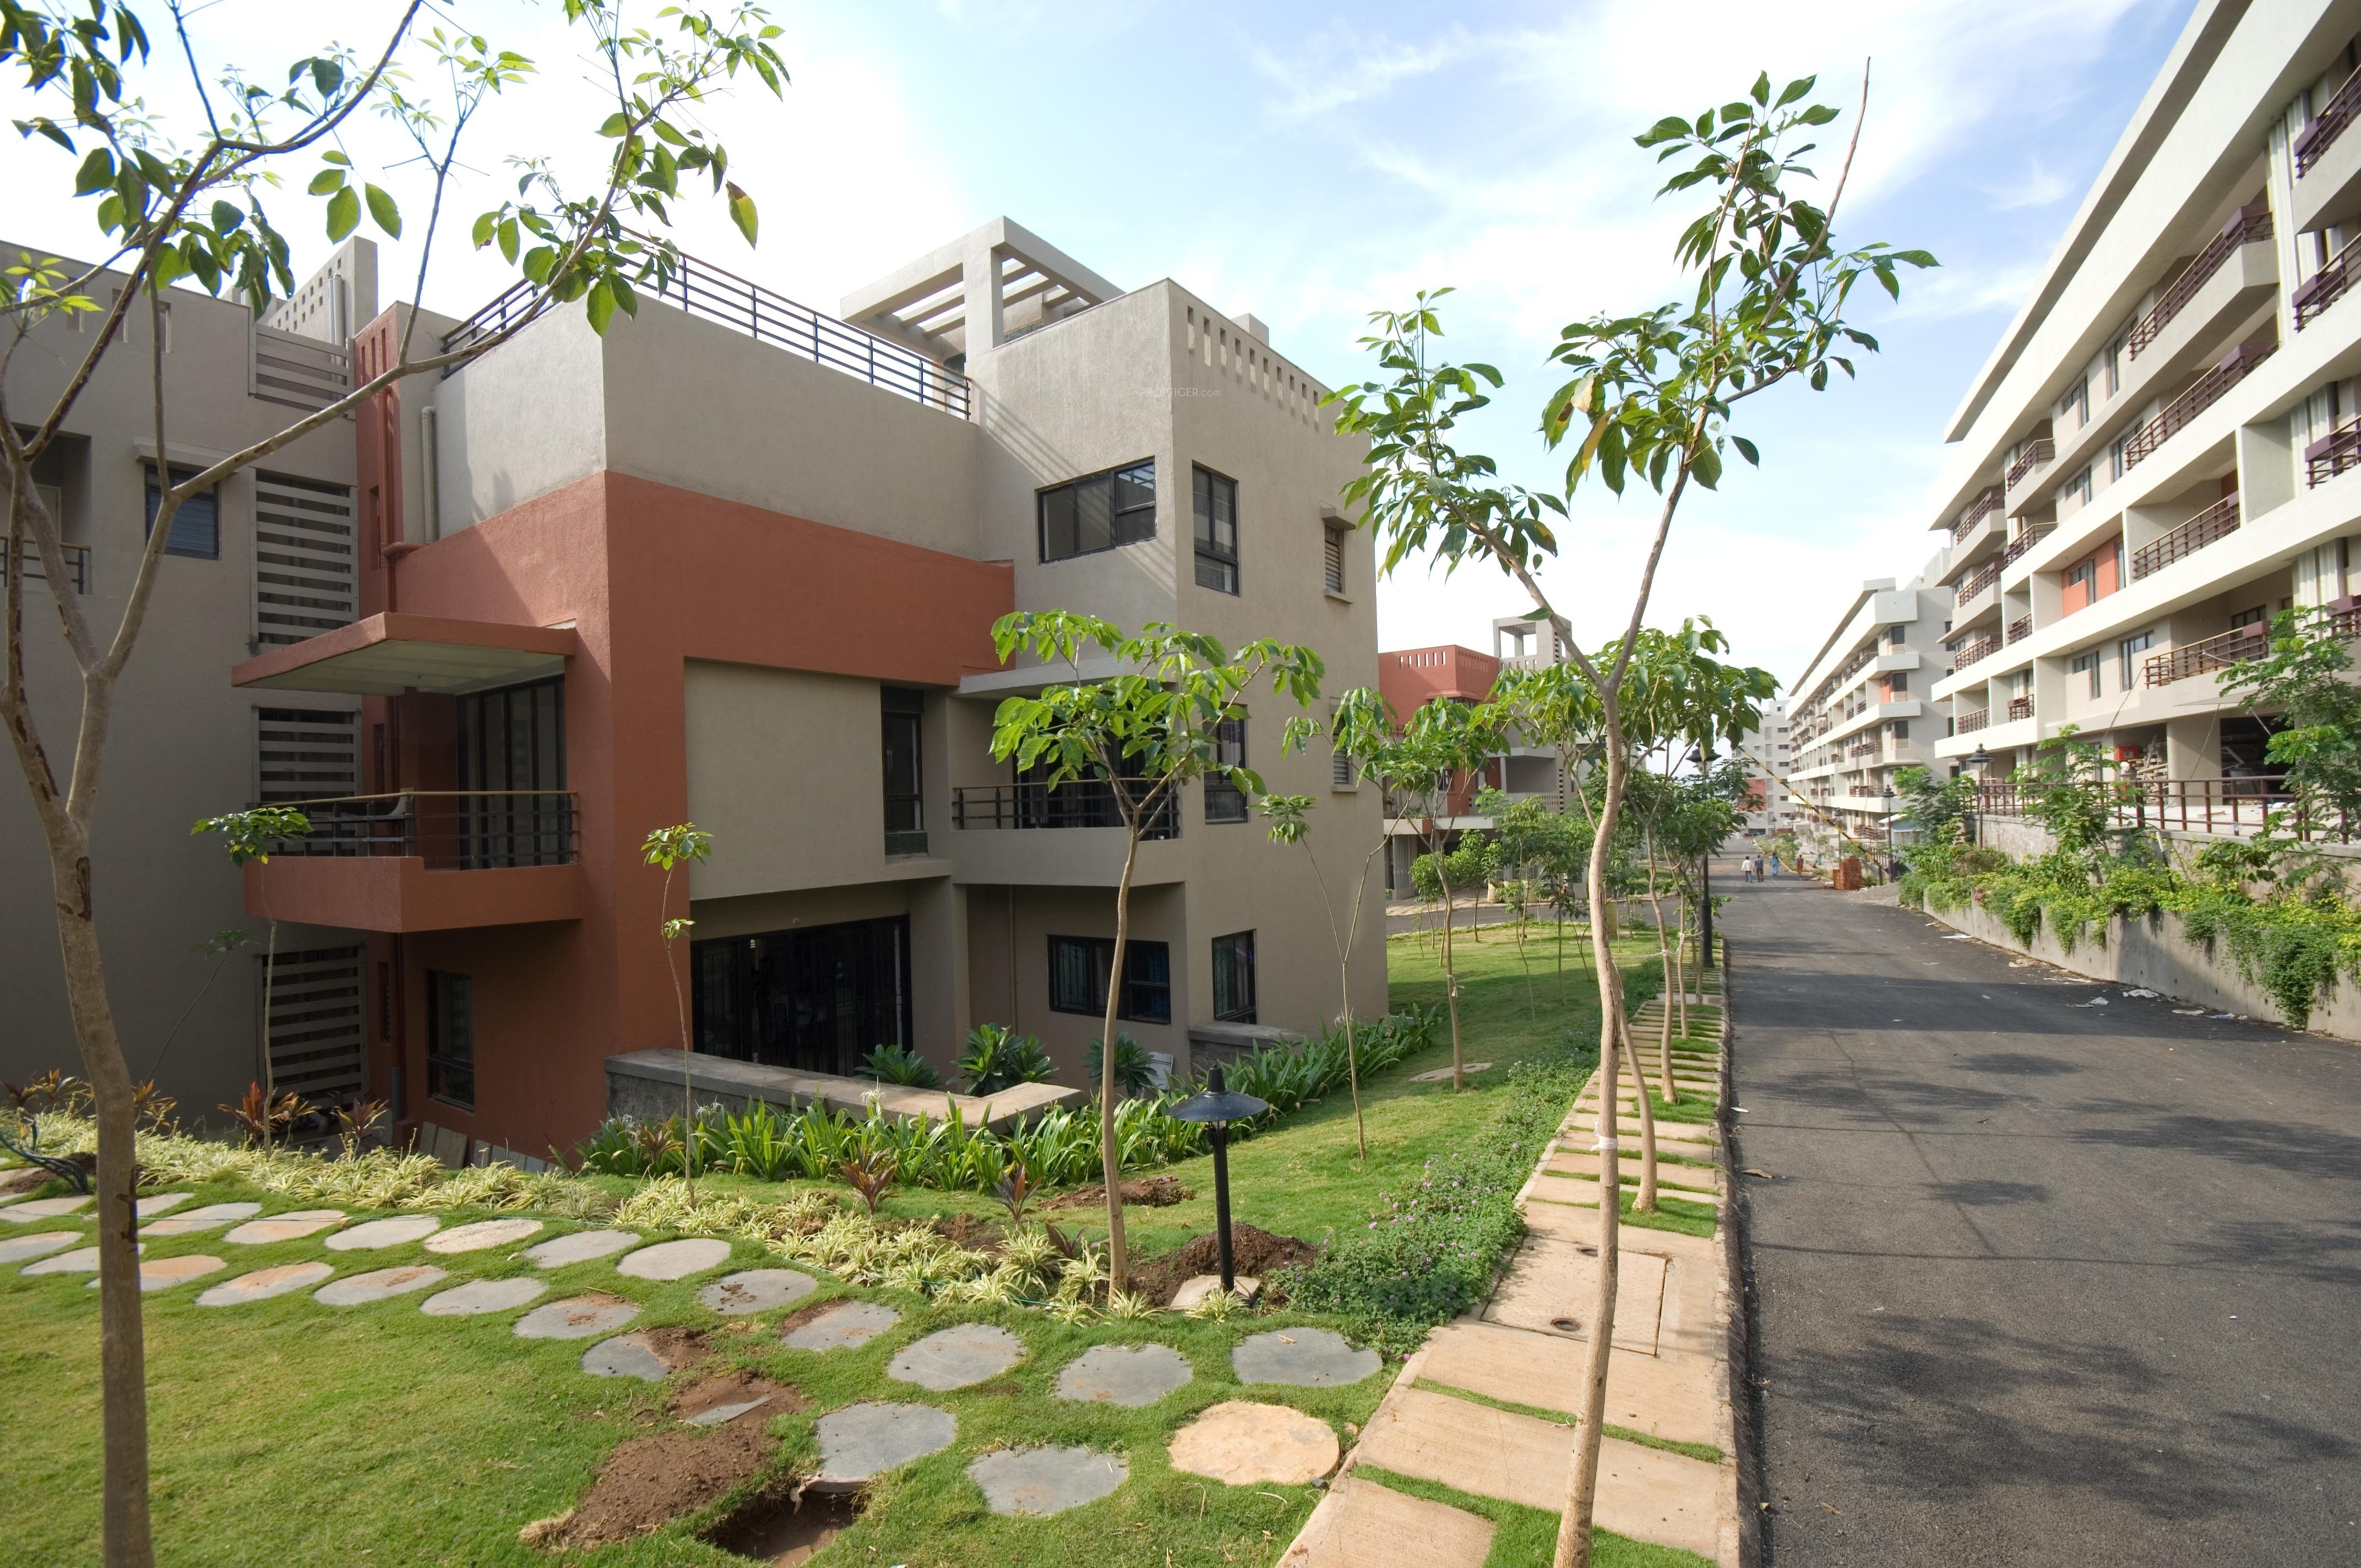 2600 Sq Ft 3 Bhk 3t Apartment For Sale In Mahindra